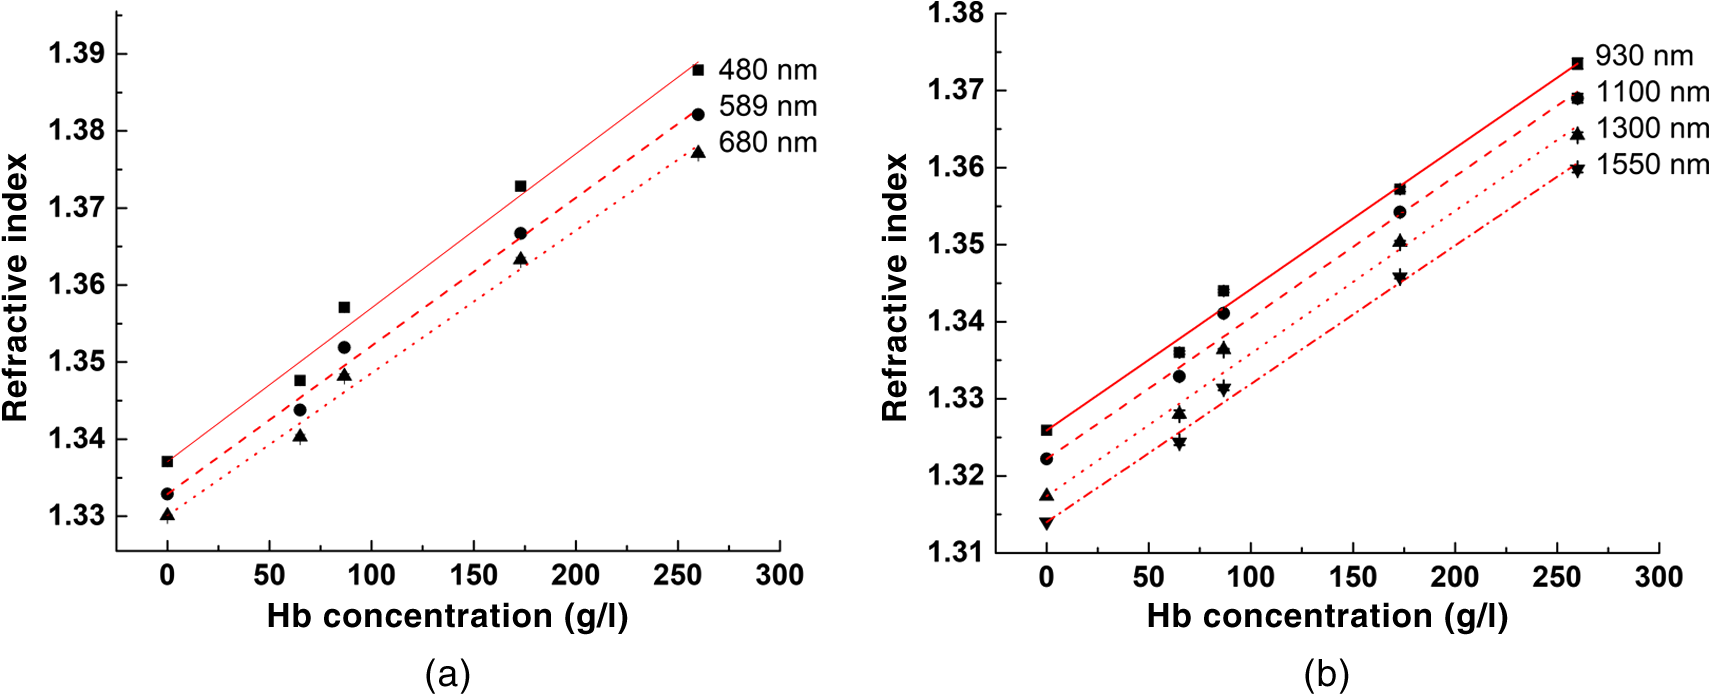 Measurement of refractive index of hemoglobin in the visiblenir the dependence of the ri on the concentration of hemoglobin in solution for a visible and b nir ranges black symbols experimental data red lines fandeluxe Image collections